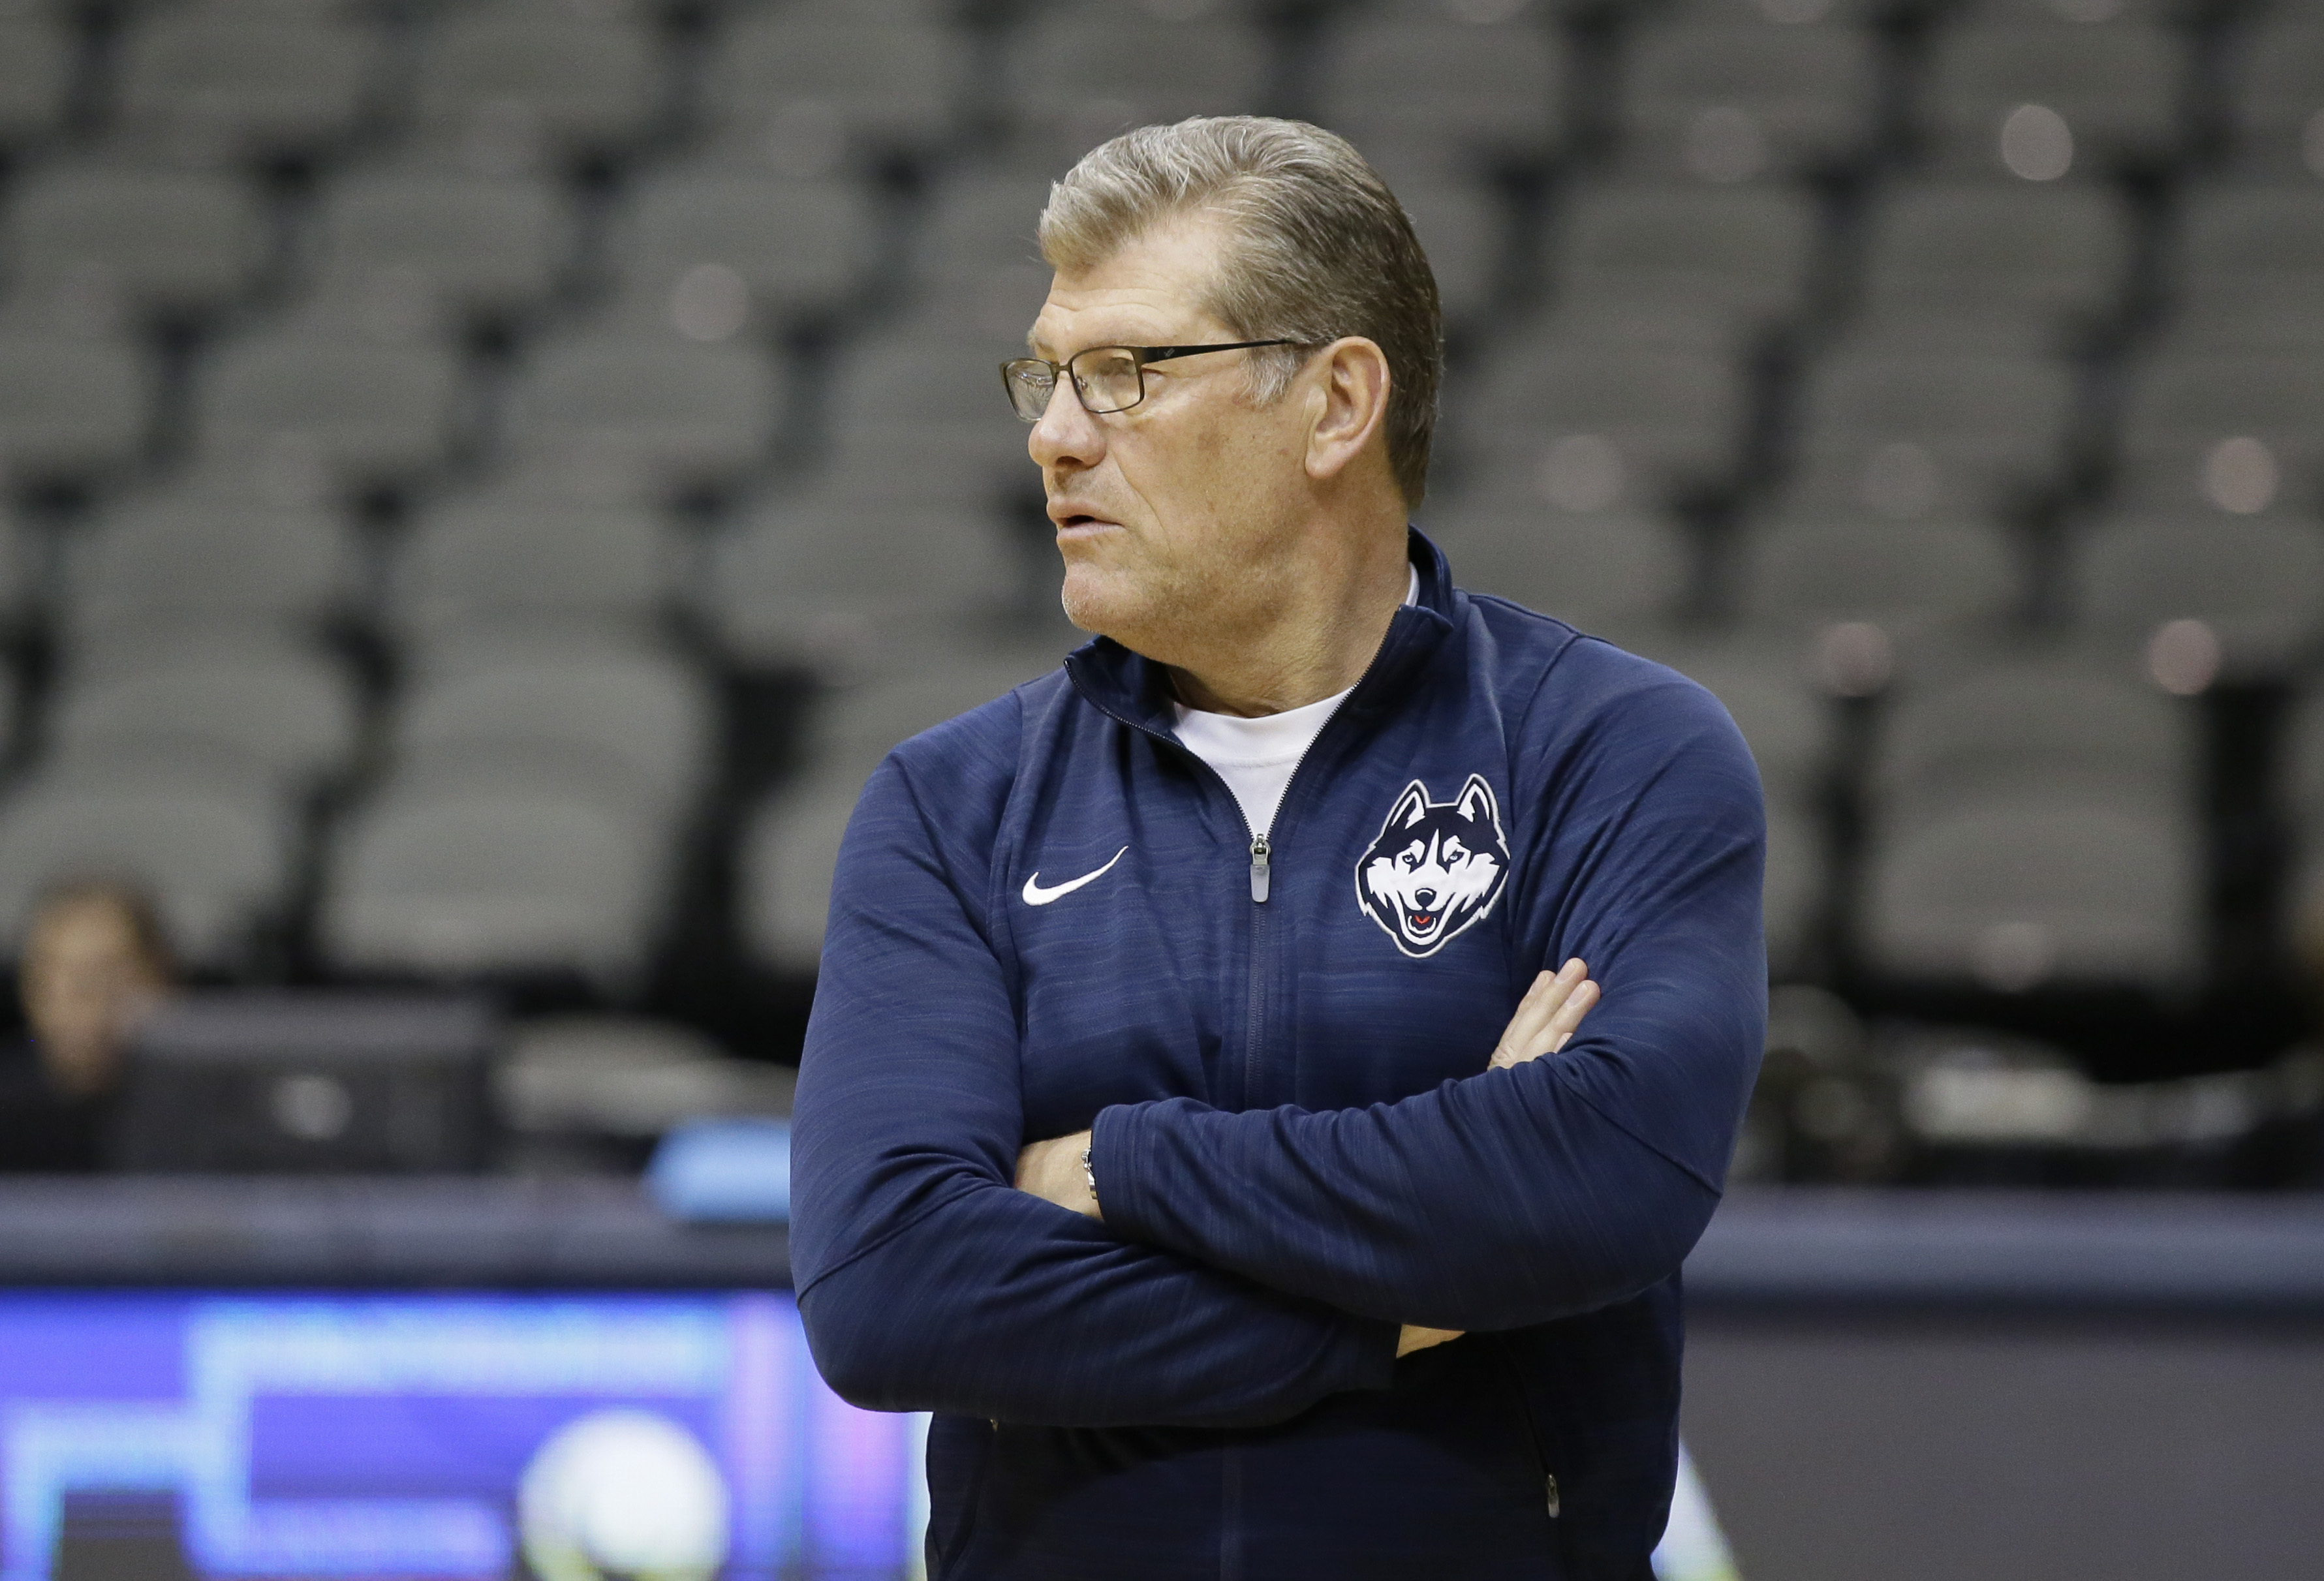 Connecticut head coach Geno Auriemma watches over his team a practice session for the women's NCAA Final Four college basketball tournament, Thursday, March 30, 2017, in Dallas. UConn will play Mississippi State on Friday. (AP Photo/LM Otero)